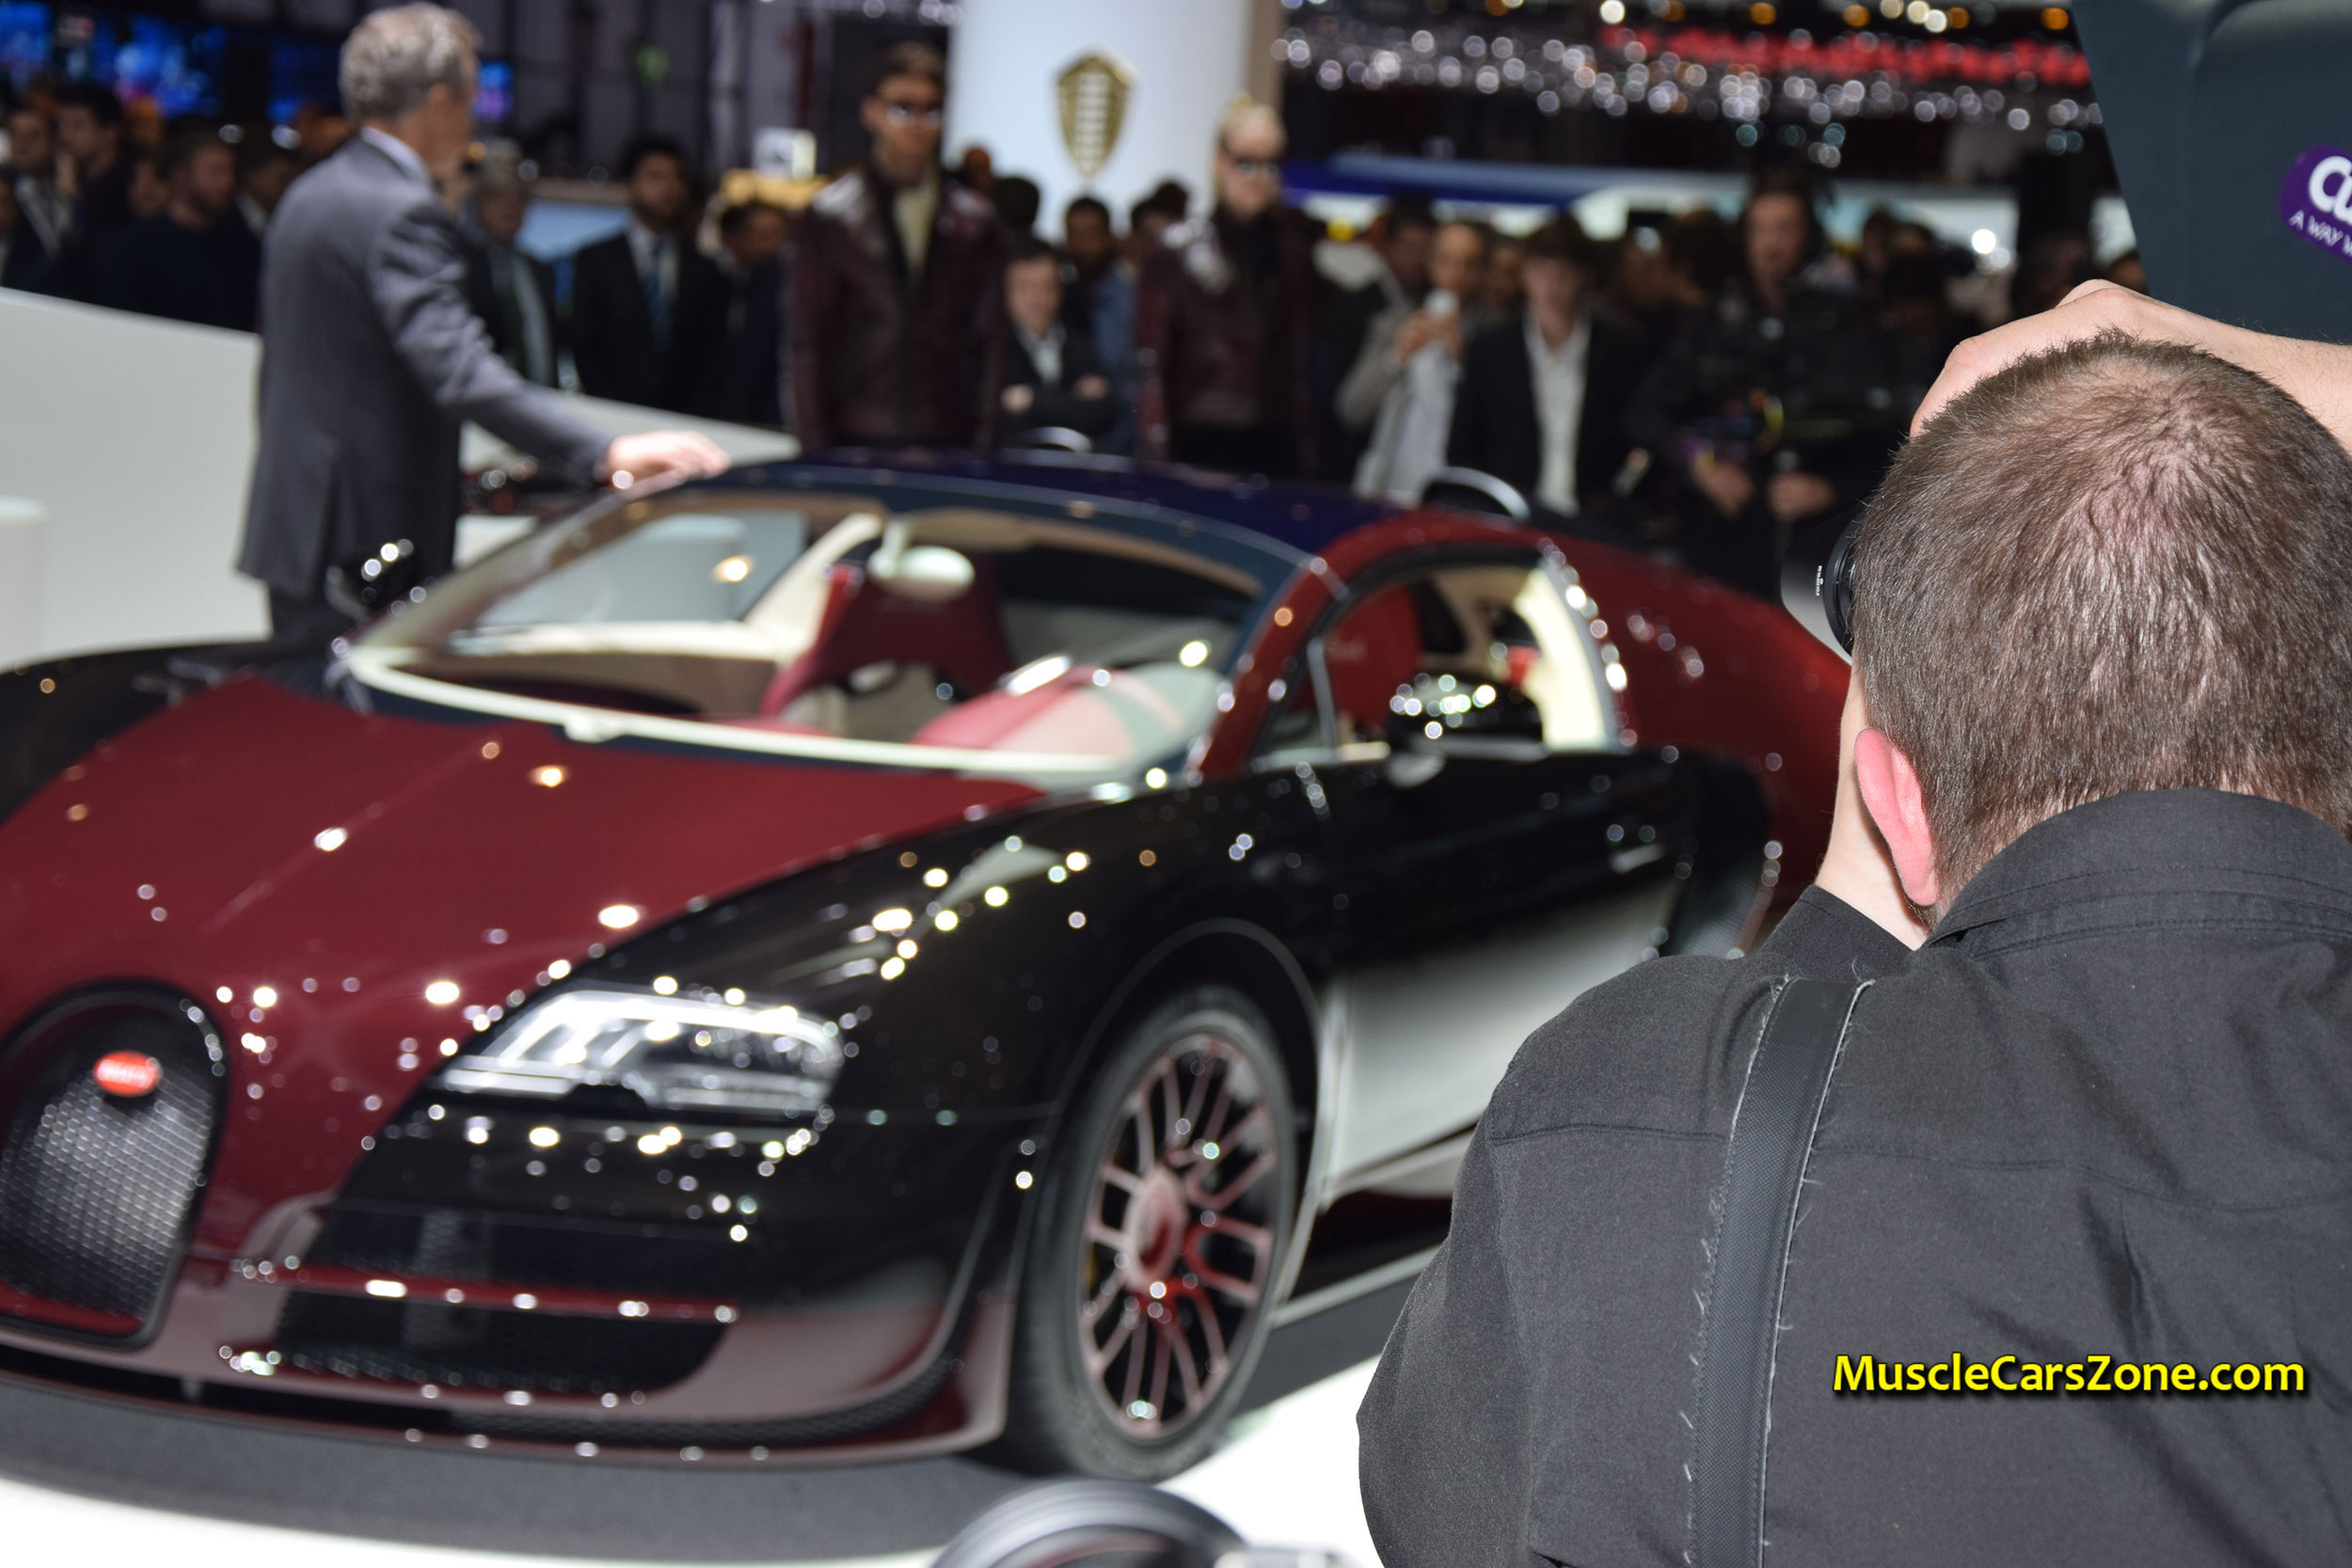 2015-Bugatti-Press-Conference-The-1st-the-450th-Bugatti-Veyron-07-2015-Geneva-Motor-Show.JPG Gorgeous Bugatti Veyron Grand Sport Vitesse Drag Race Cars Trend